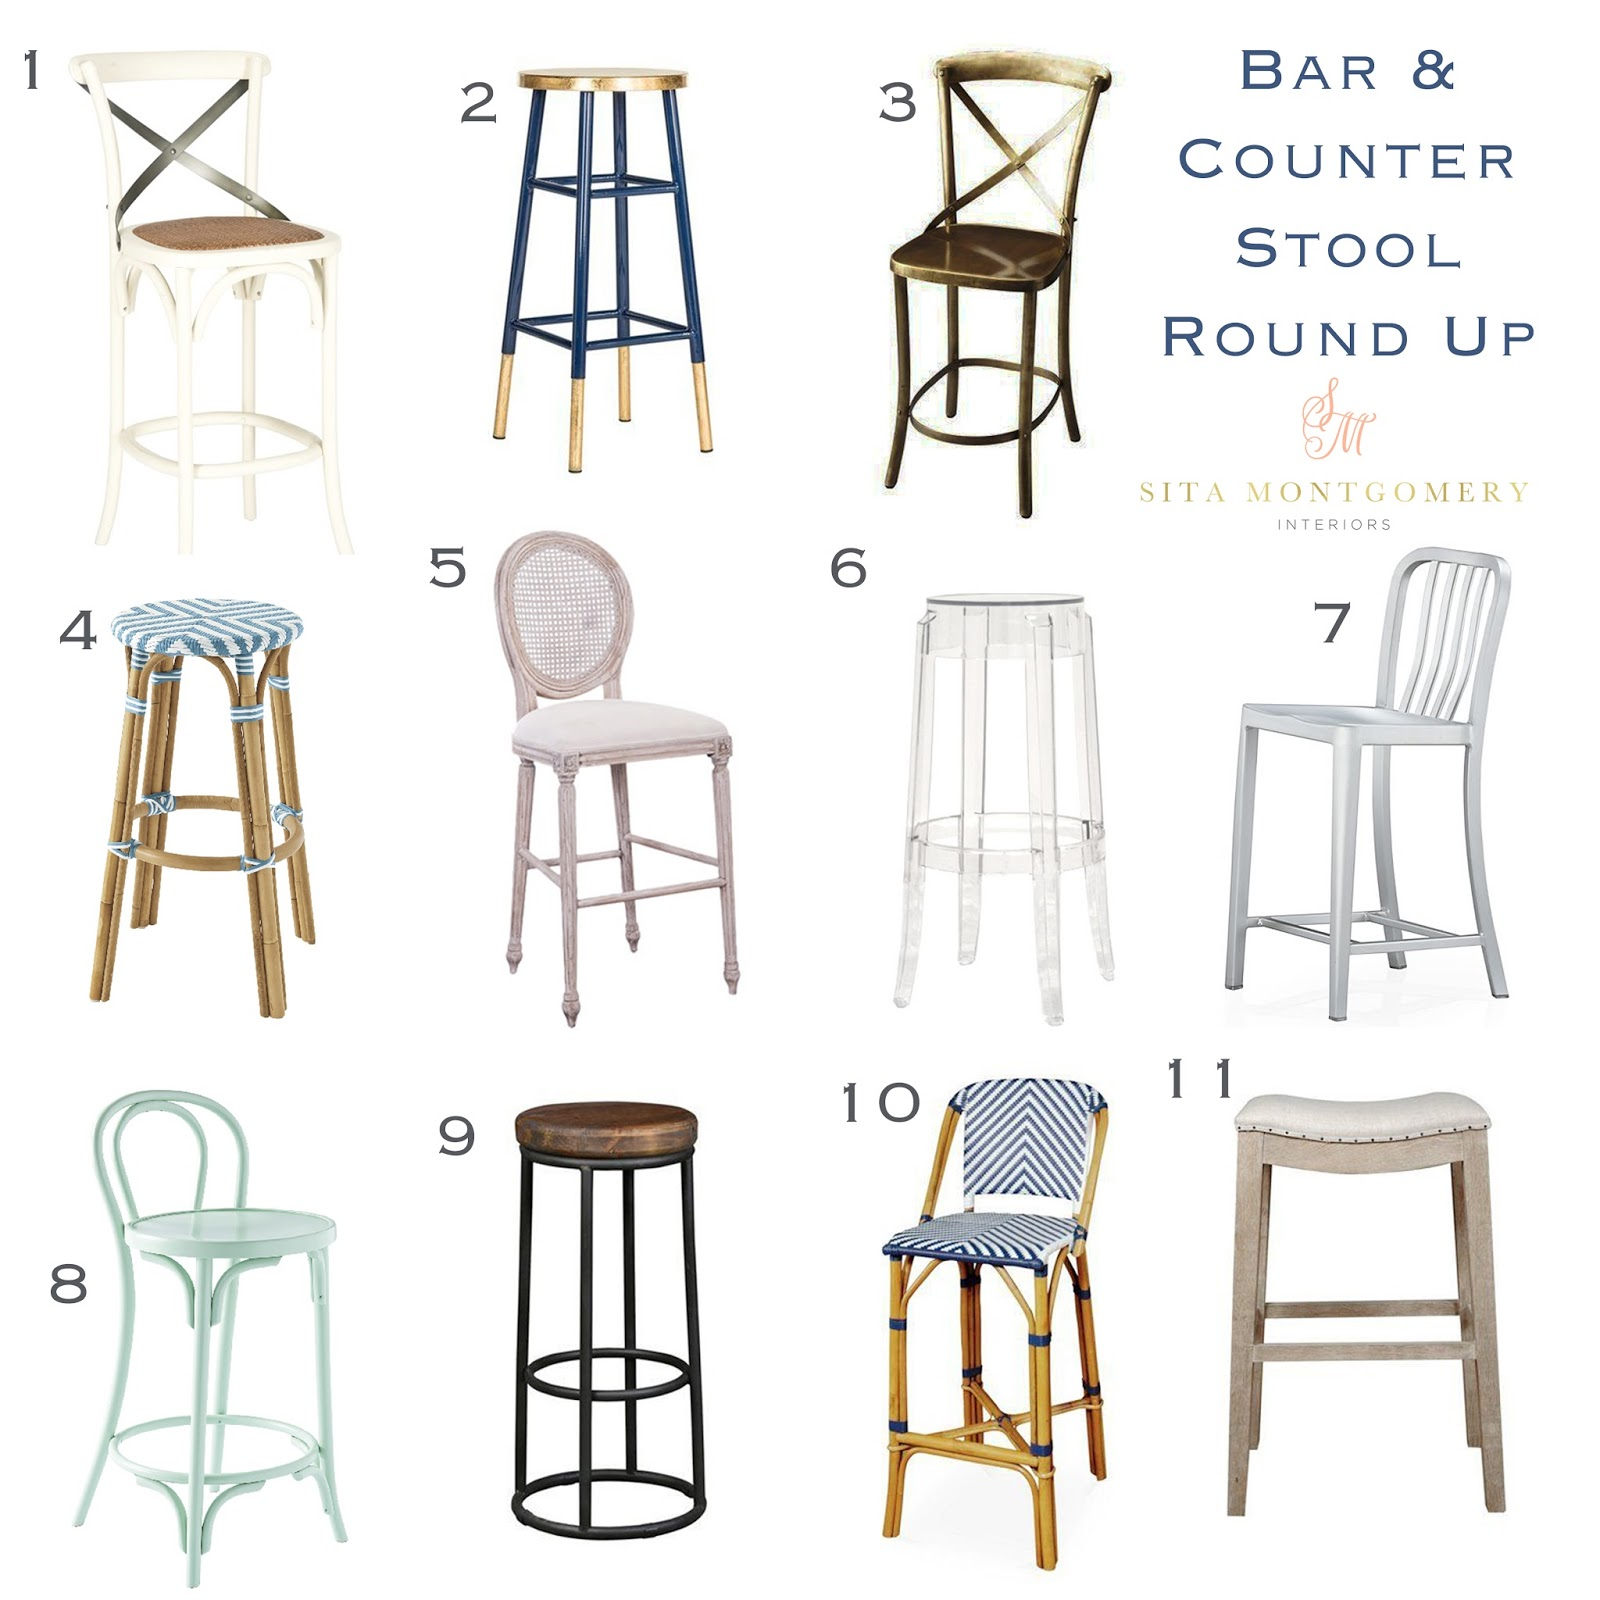 Outstanding Bar And Counter Stool Round Up Sita Montgomery Interiors Bralicious Painted Fabric Chair Ideas Braliciousco